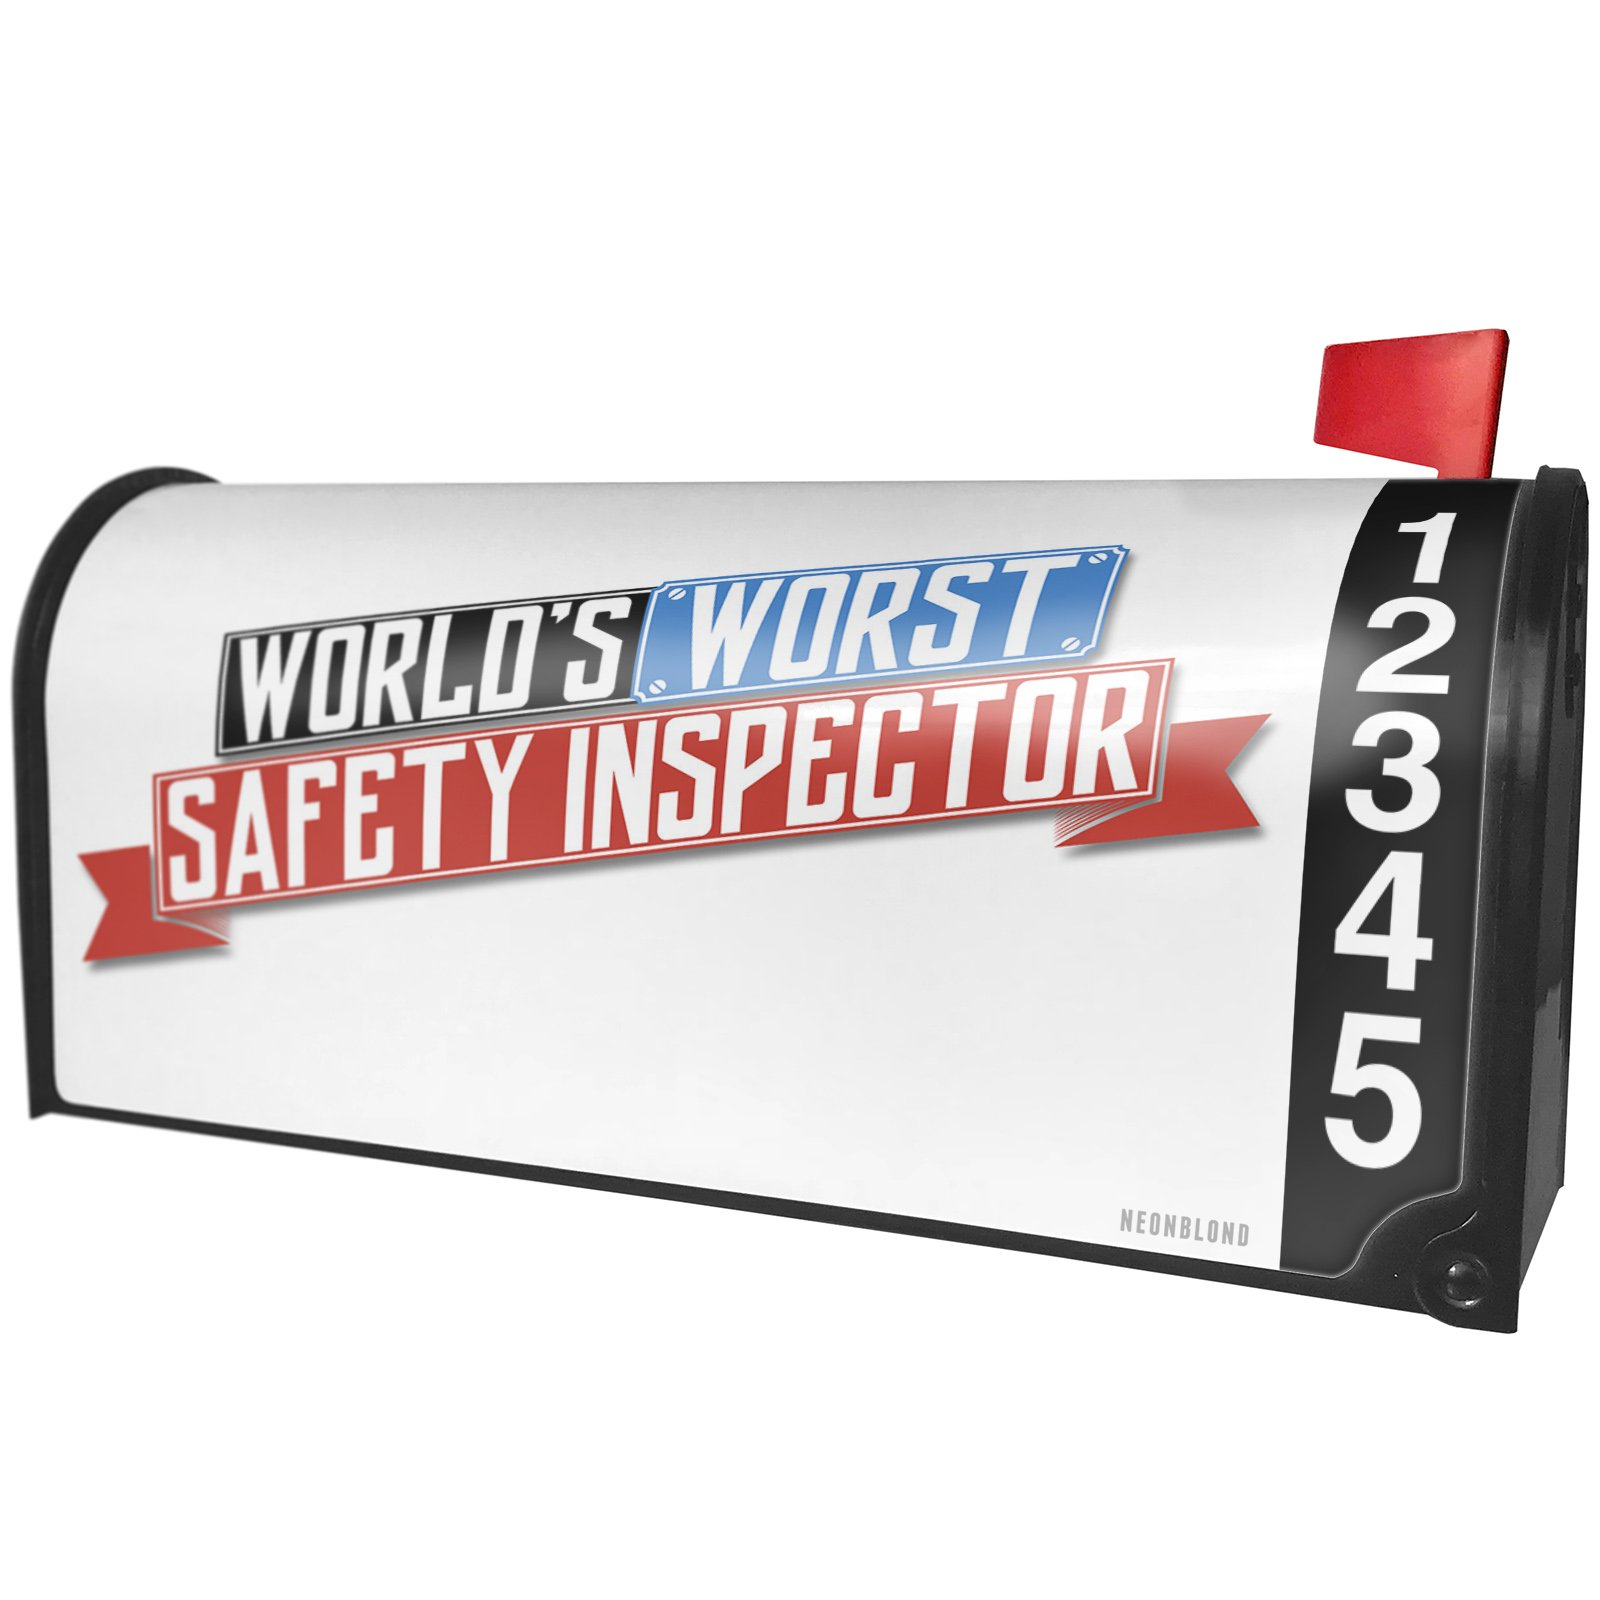 NEONBLOND Funny Worlds Worst Safety Inspector Magnetic Mailbox Cover Custom Numbers